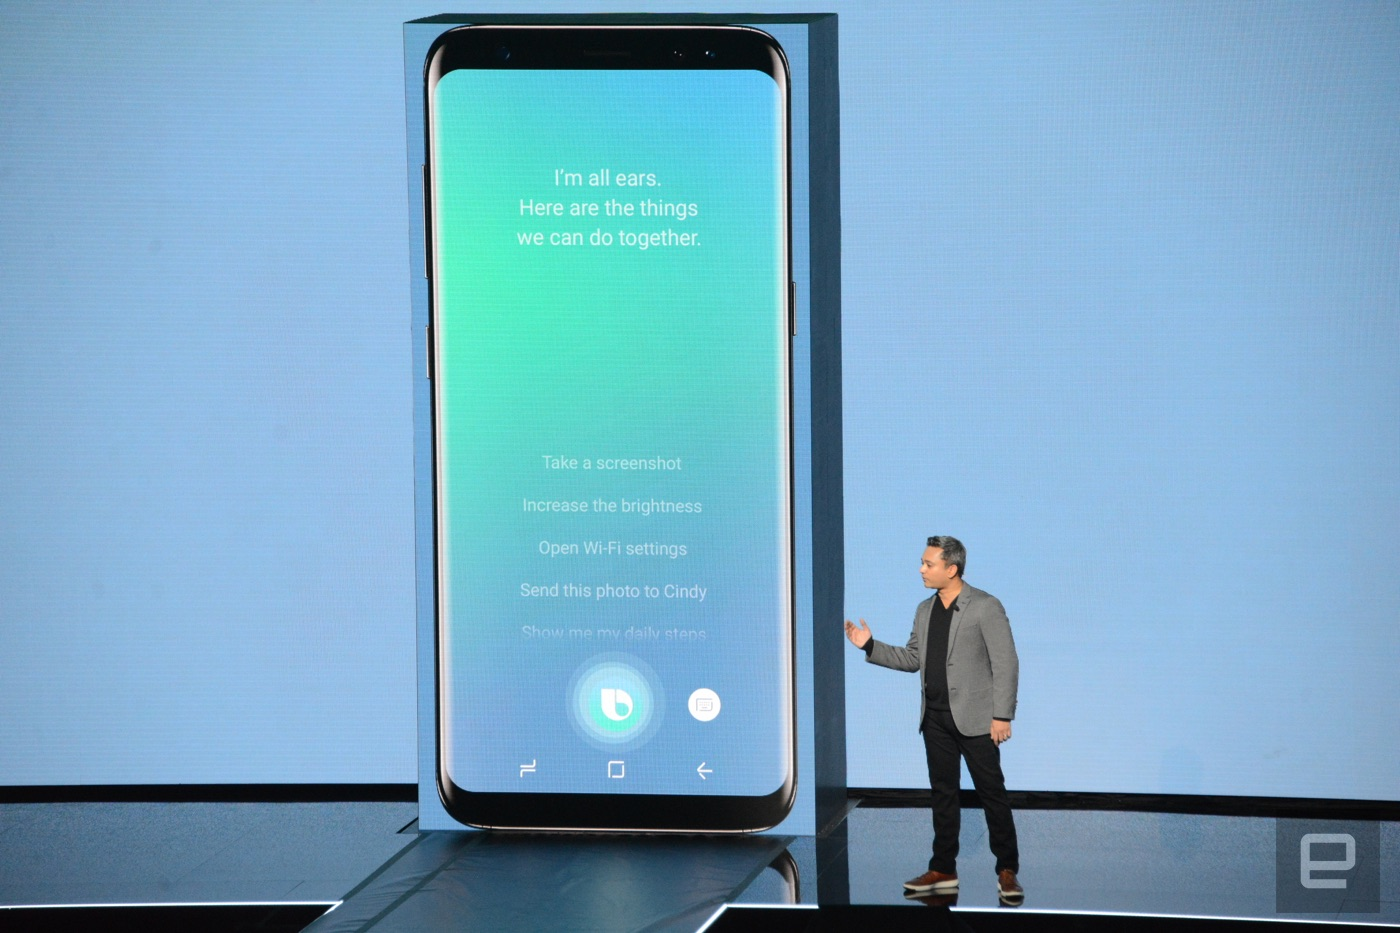 Samsung's Bixby AI assistant can see as well as talk ...